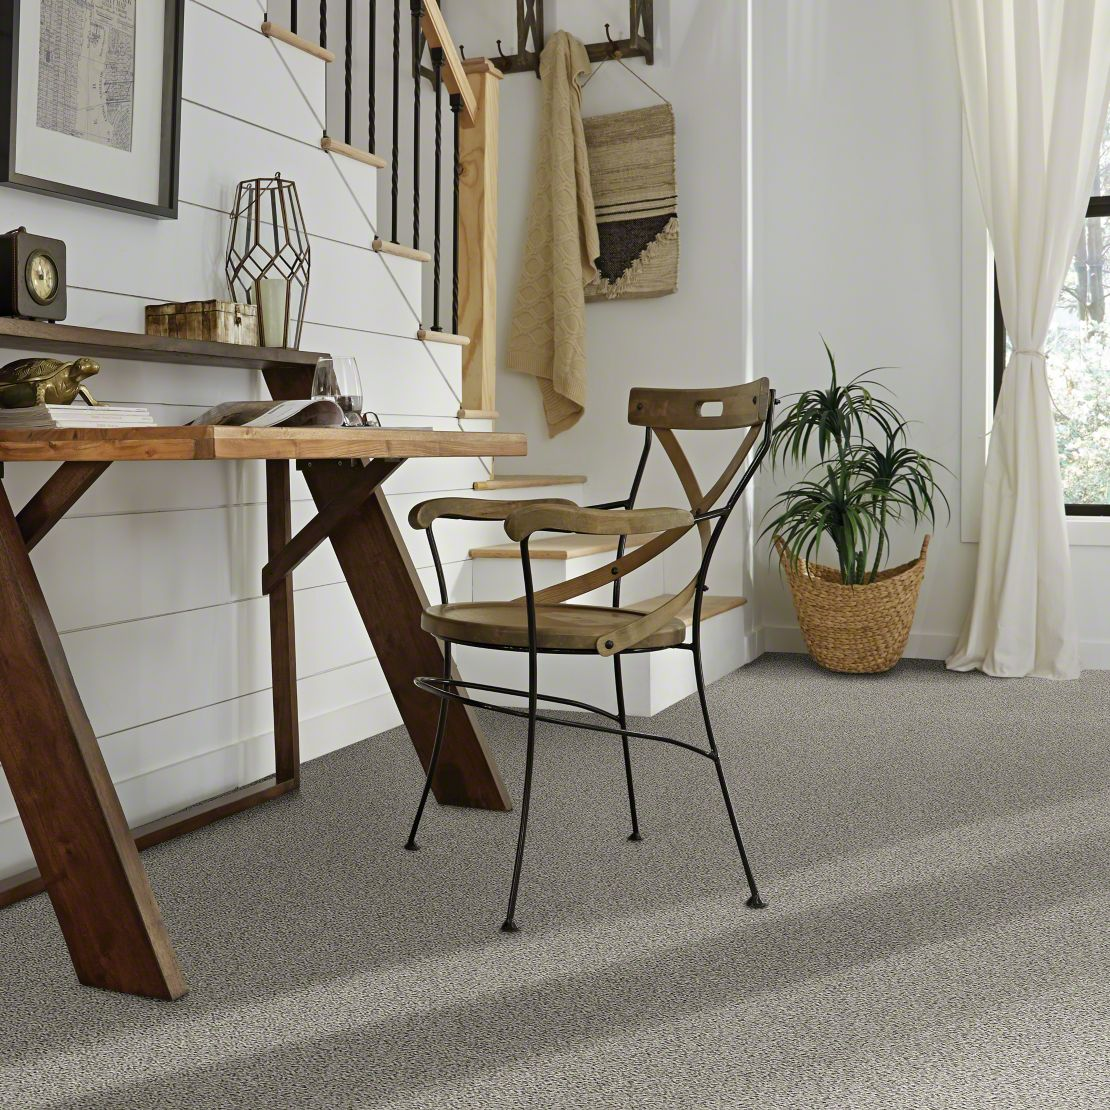 Moro carpet flooring | Kopp's Carpet & Decorating